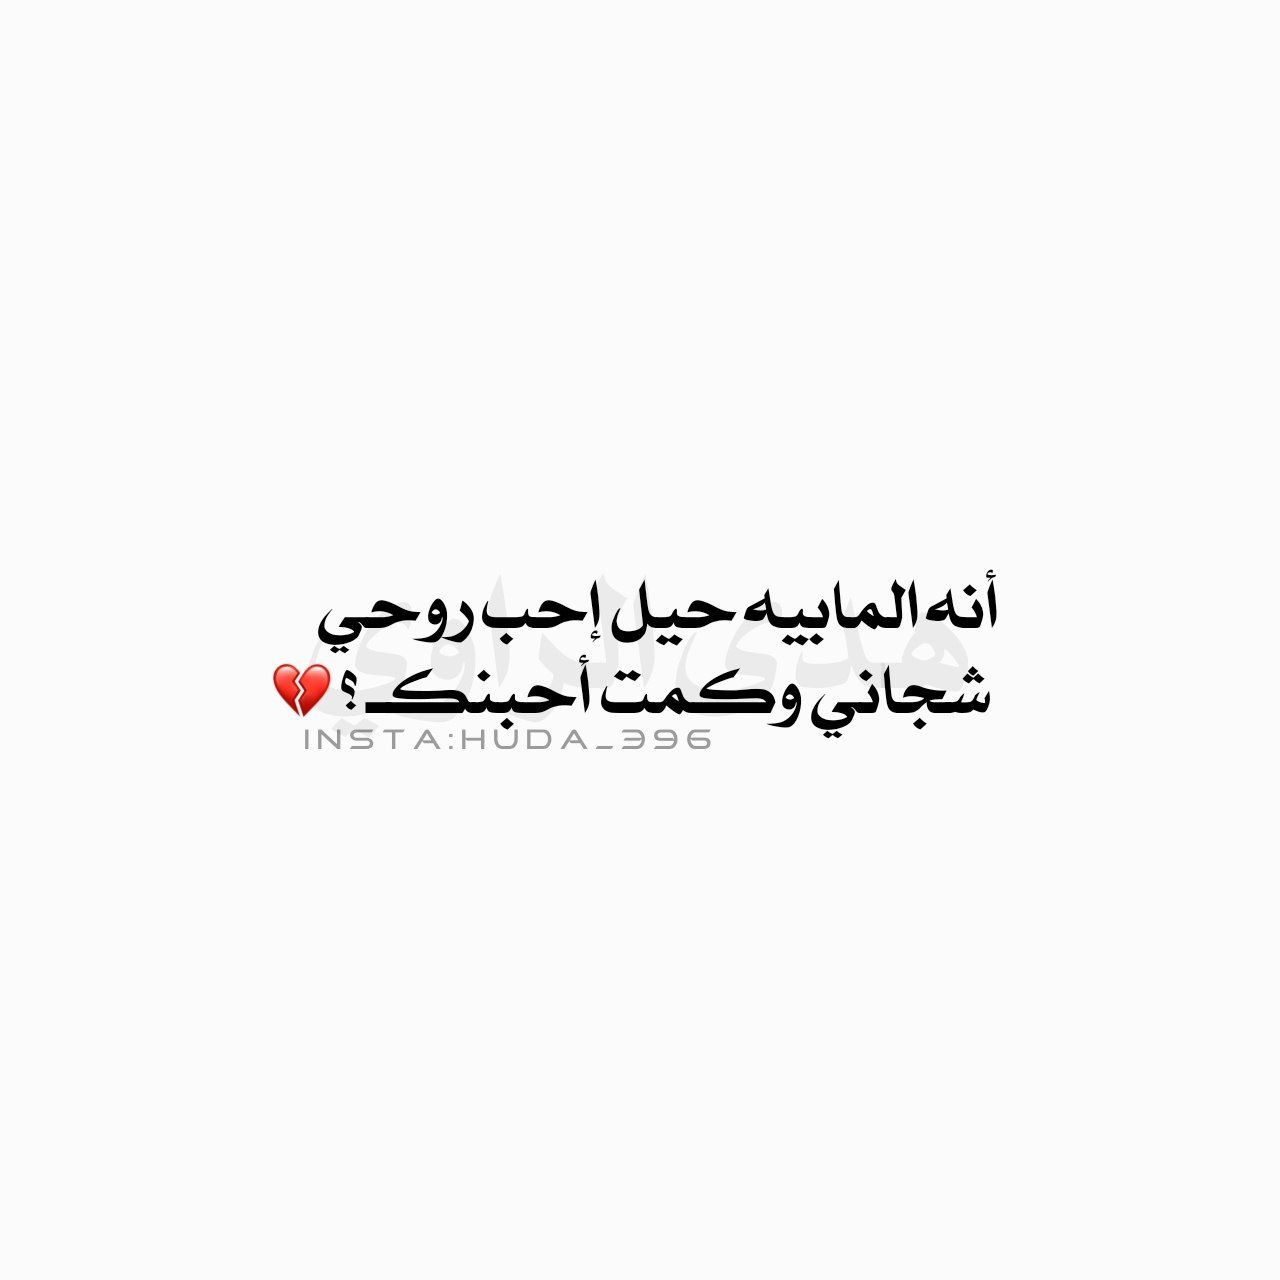 Pin By Zainab Dia On Arabic عربي Talking Quotes Cool Words Photo Quotes